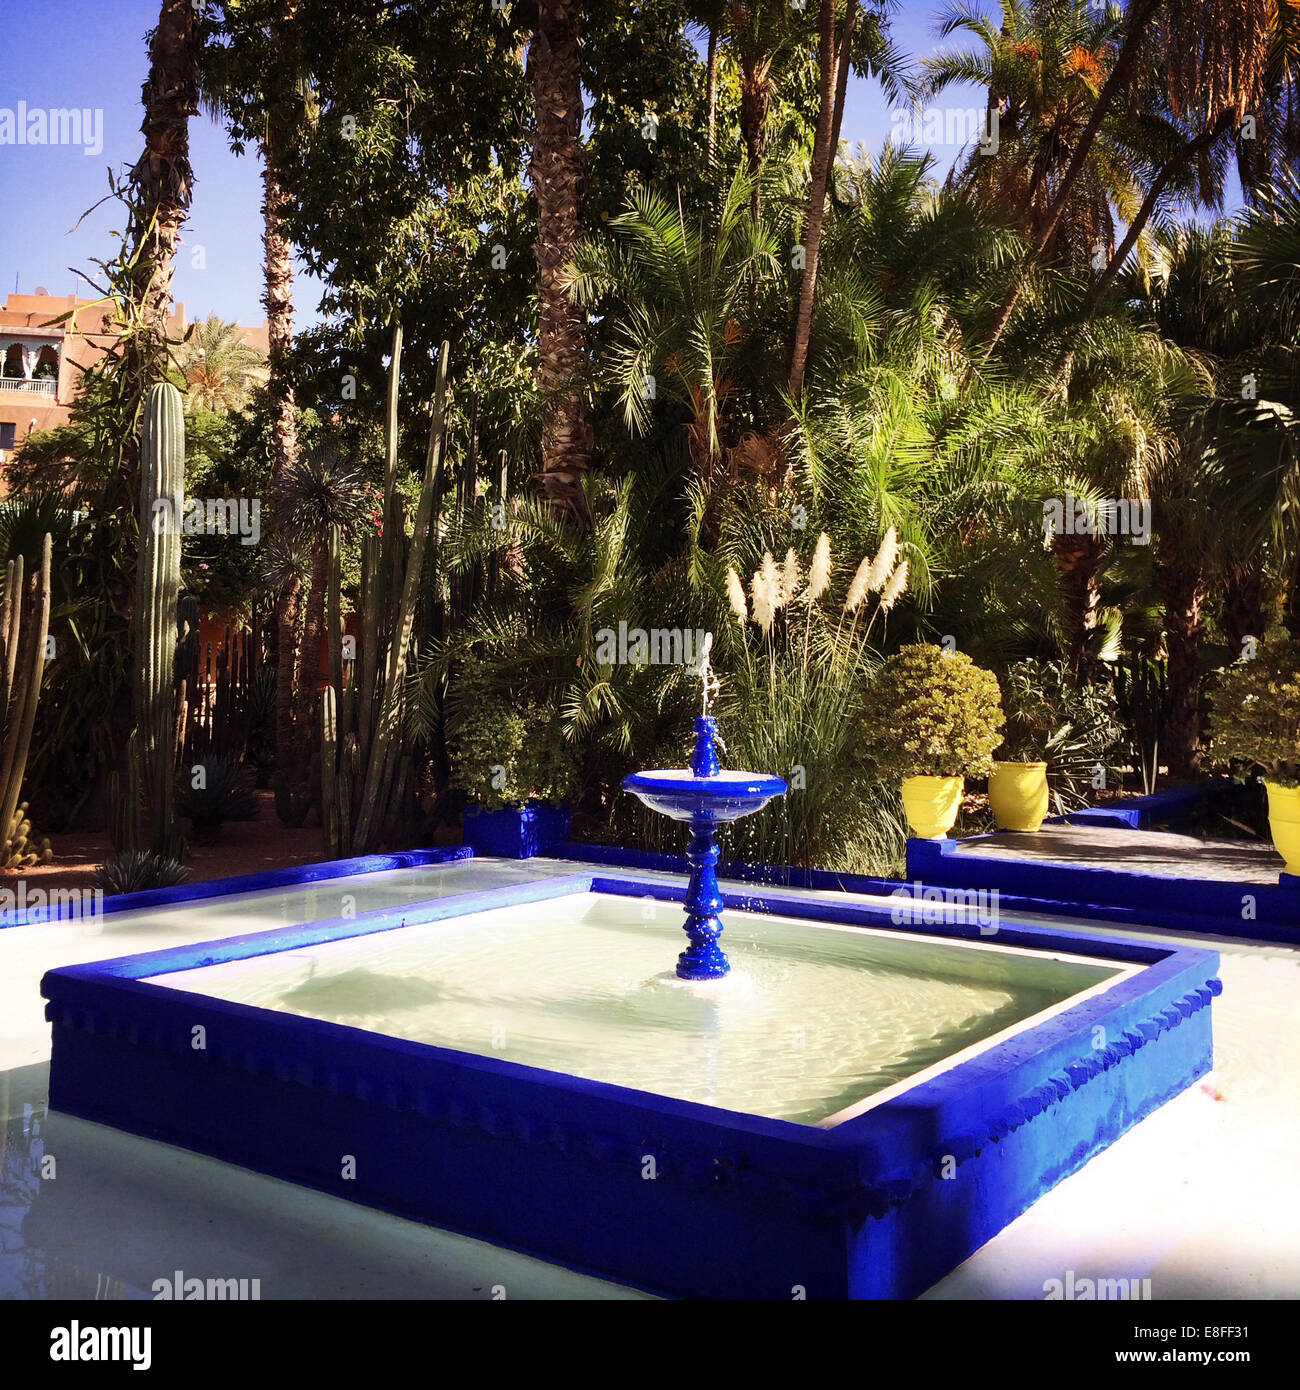 Morocco, Marrakesh, Bleu Fountain in Jardin Majorelle - Stock Image